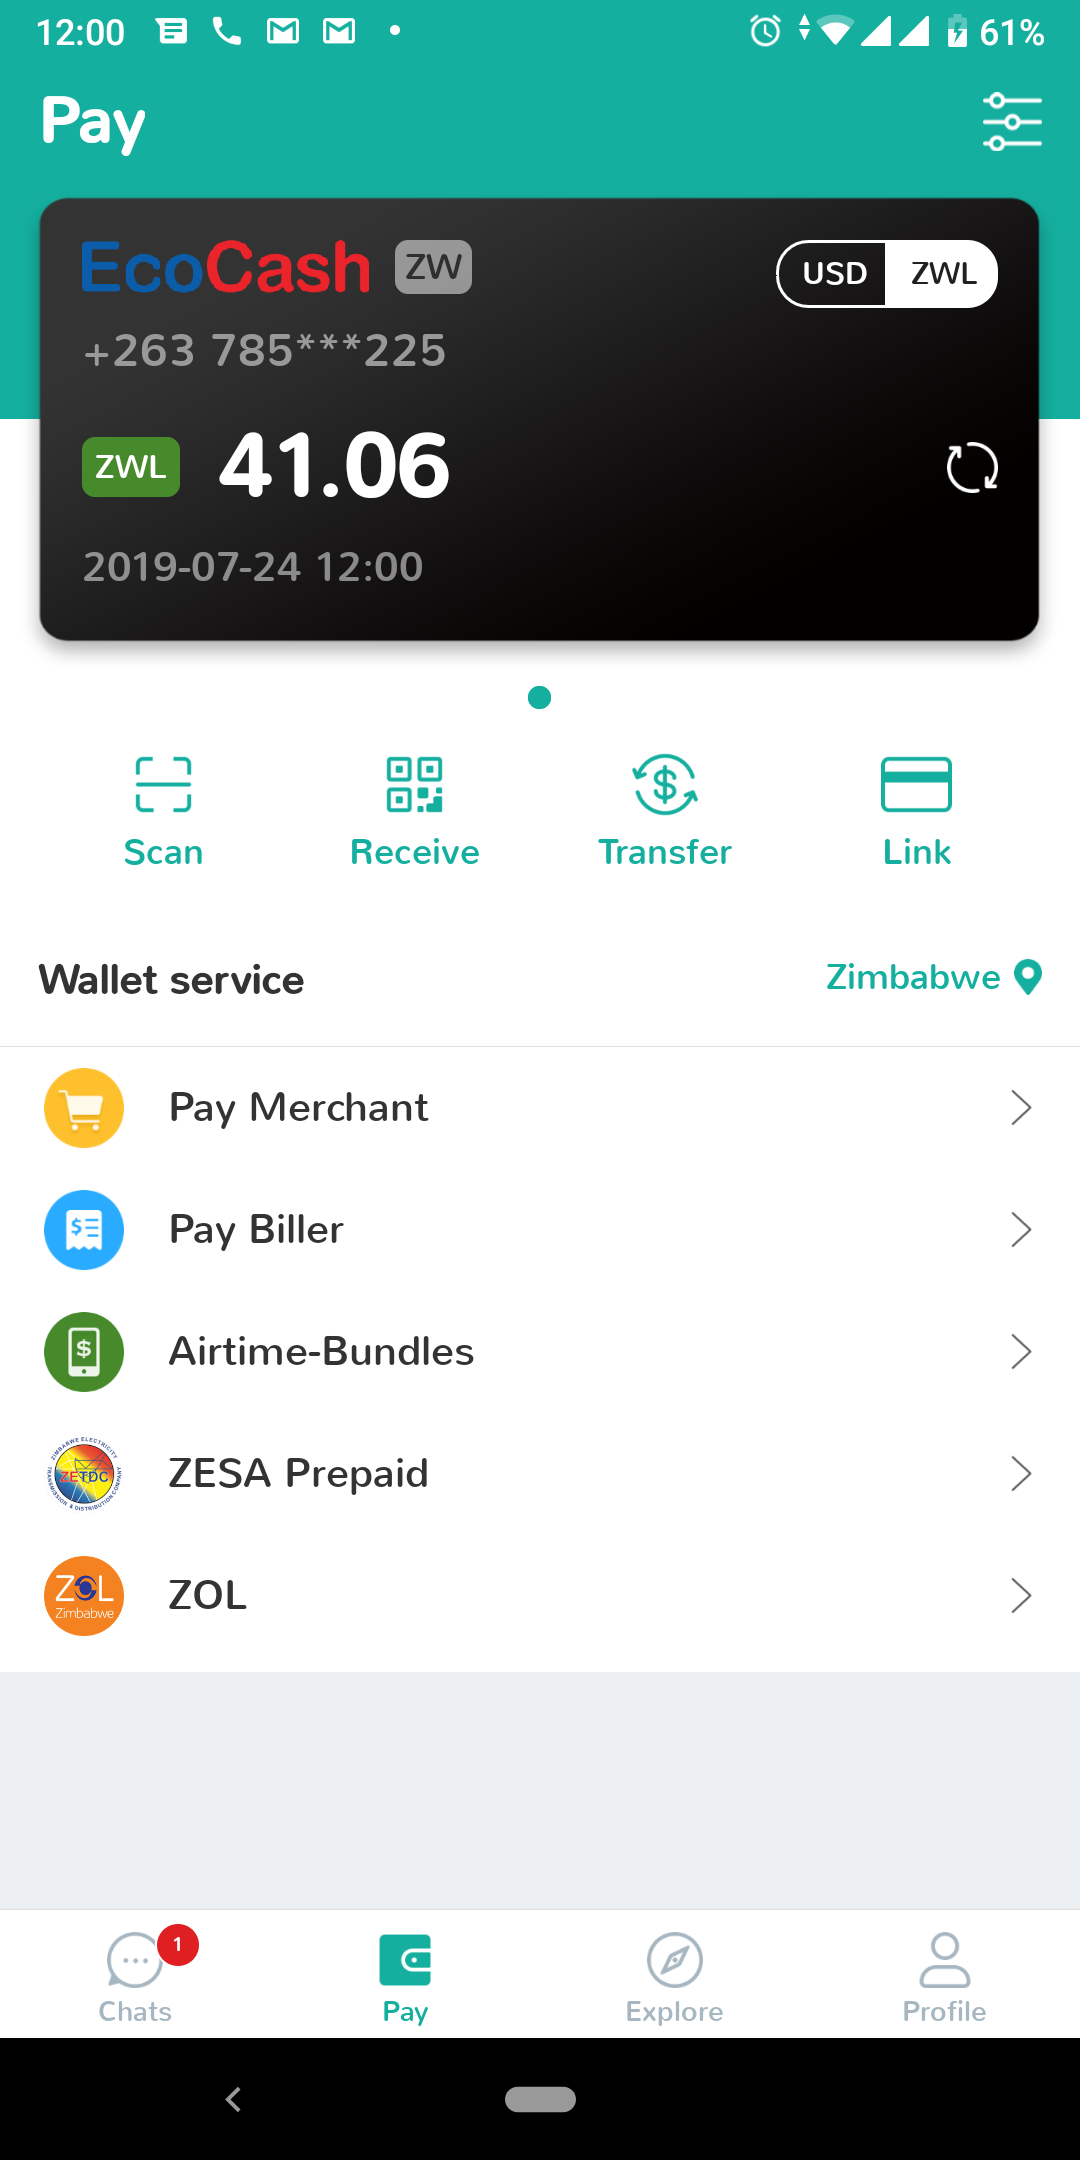 Cassava (Econet) Launching Sasai, A Chat And Payments App Seeking To